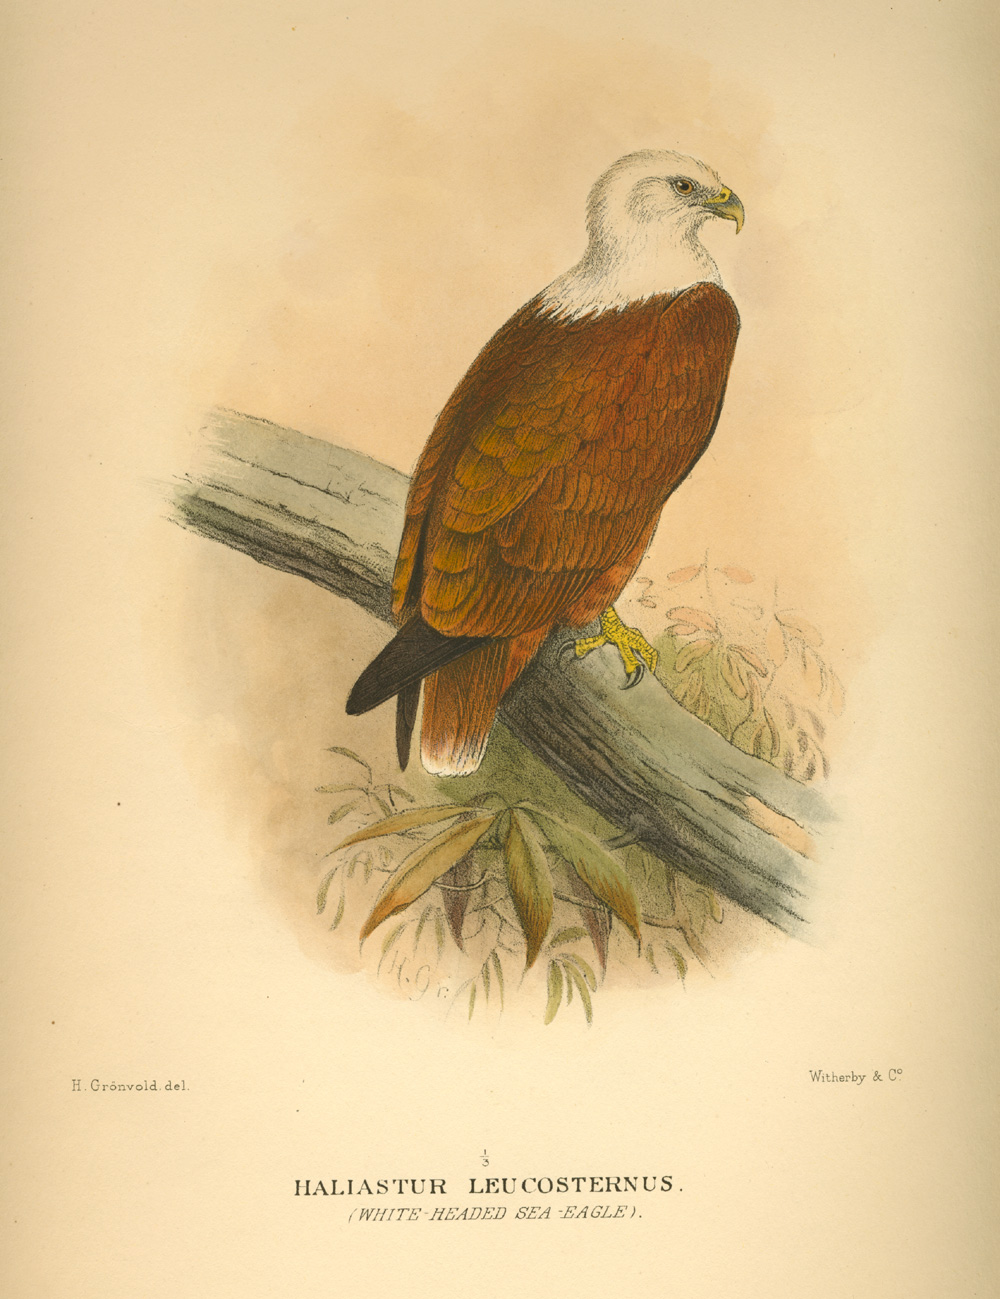 Australian Brahminy Kite, White-headed Sea-Eagle, Haliastur Leucosternus. Mathews c1916.